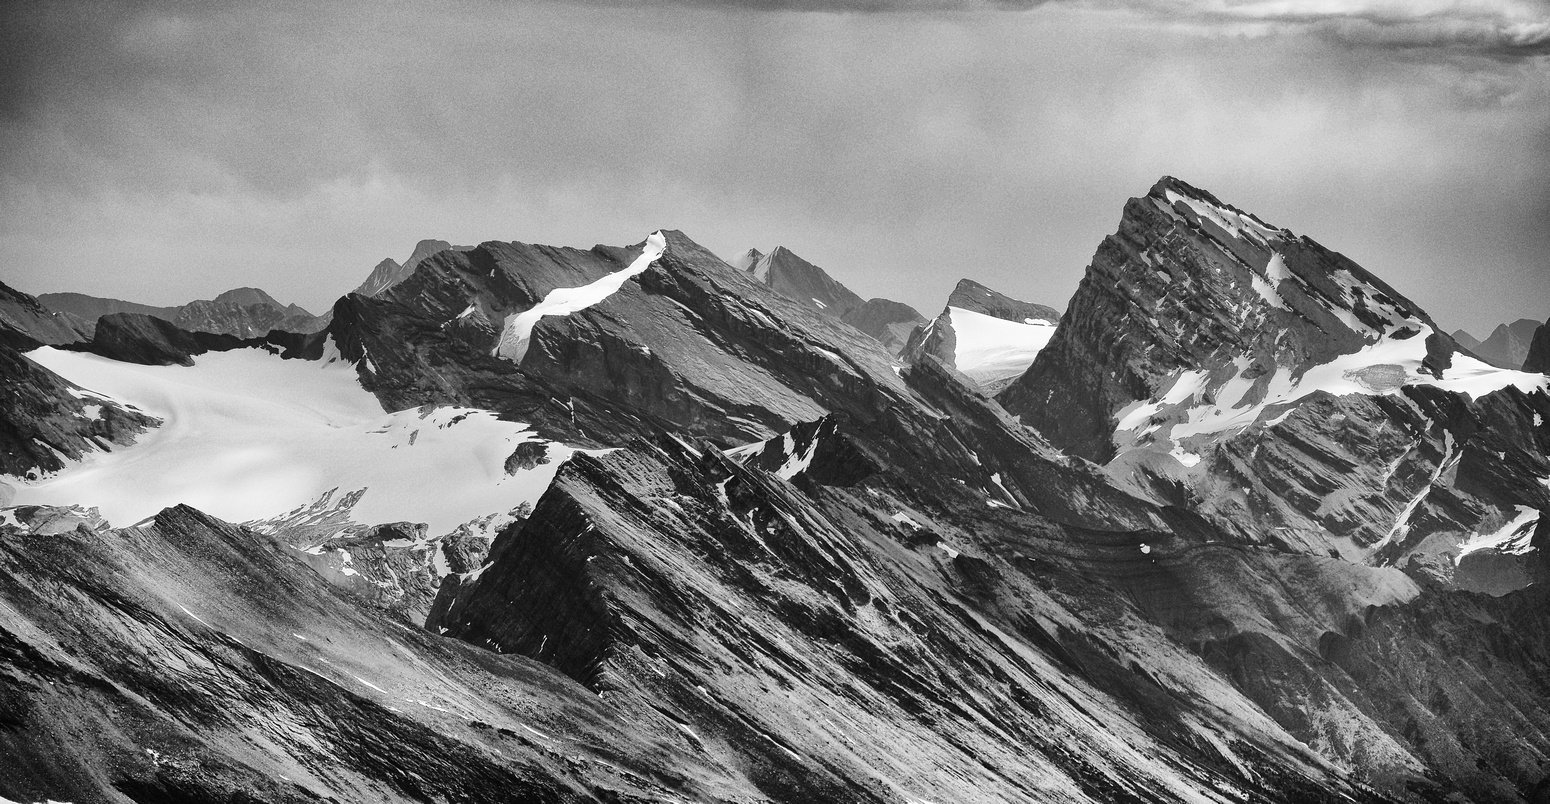 Cataract Peak is a near-11,000er located to the south - and also in a lovely, remote area of the Siffleur Wilderness.